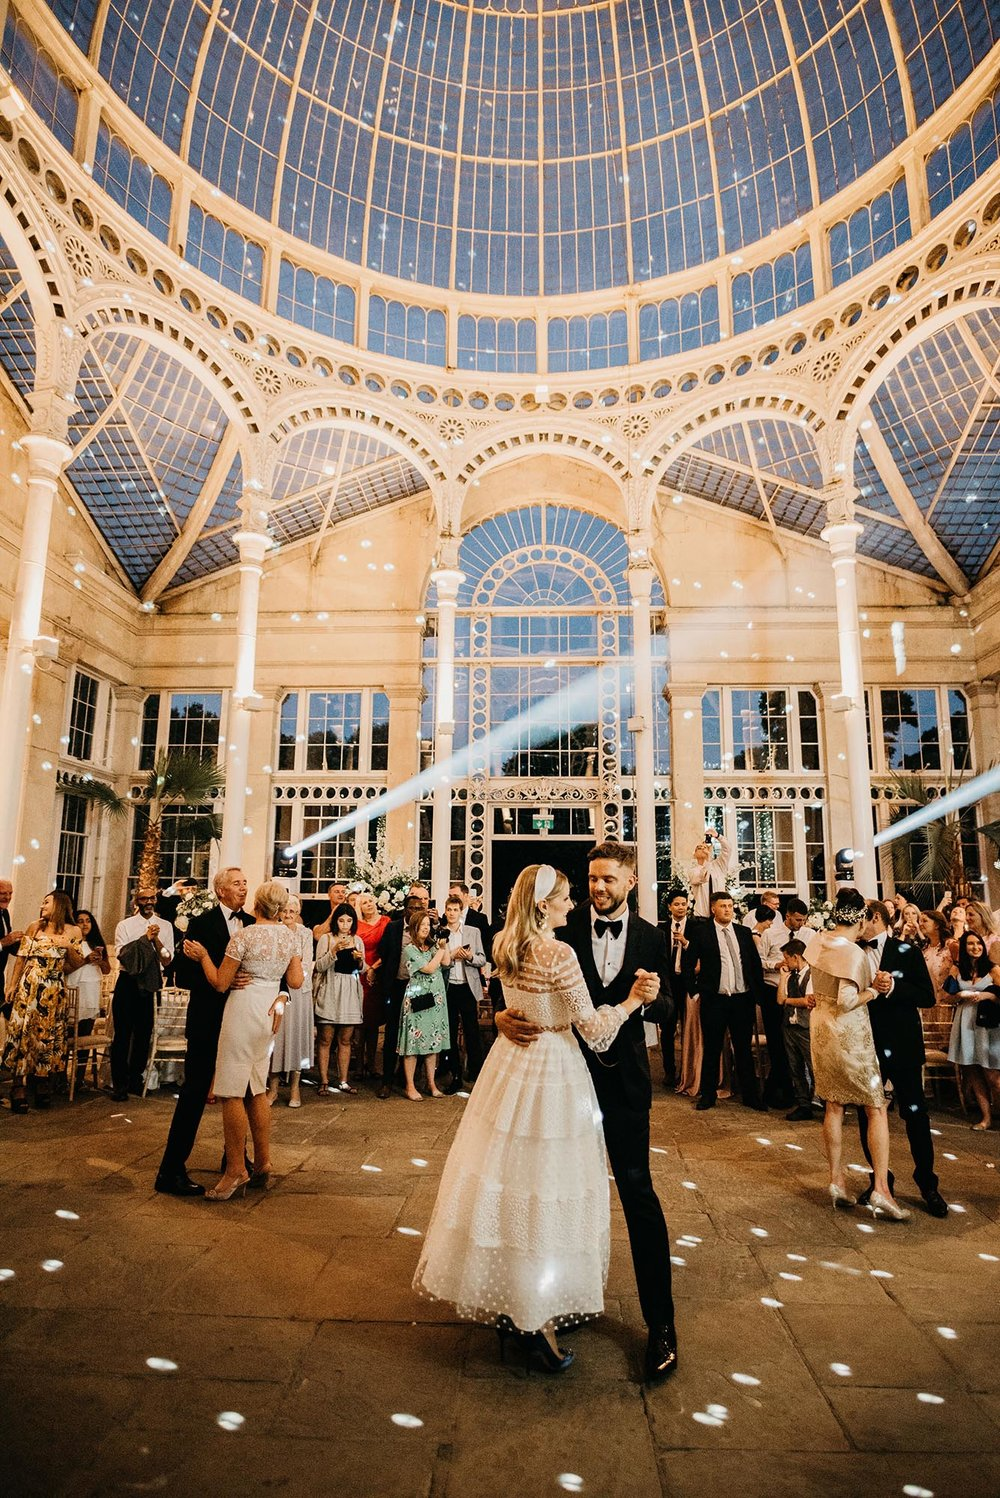 Syon House wedding photographer